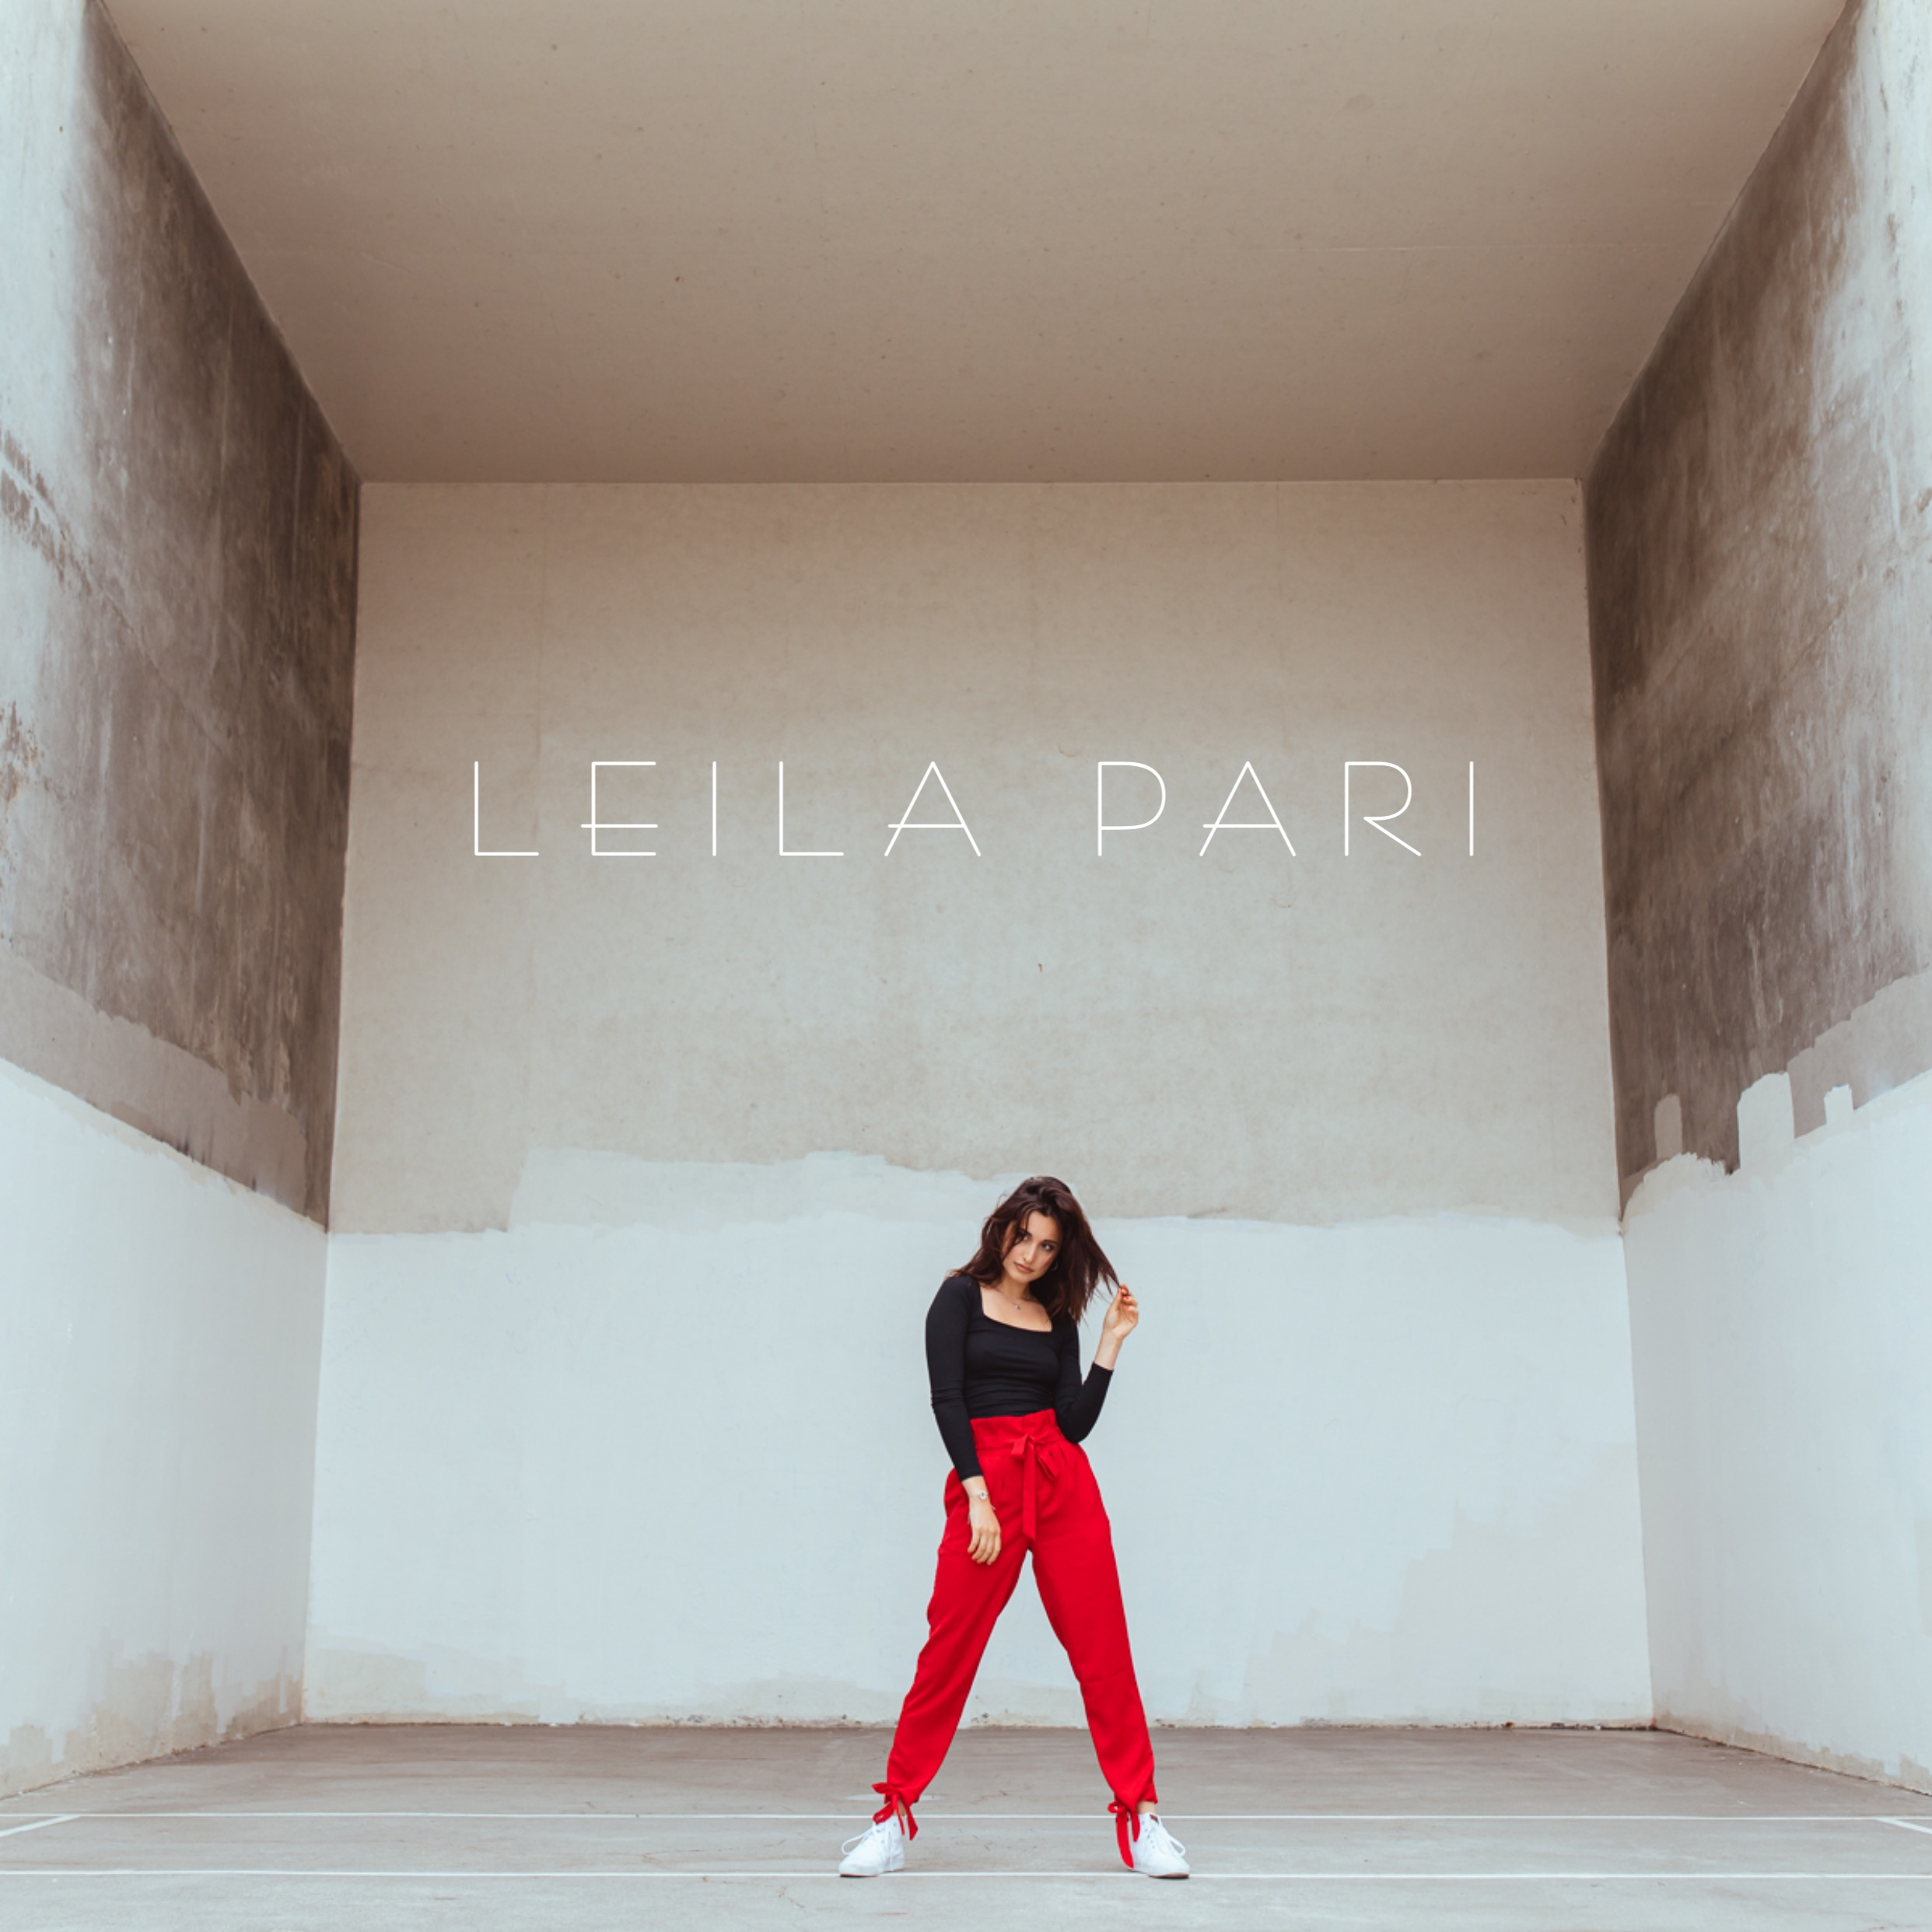 Leila's debut EP will be releasing Fall of 2019 and is comprised of songs she has written and production collaborations with trend-setting producers around the world.